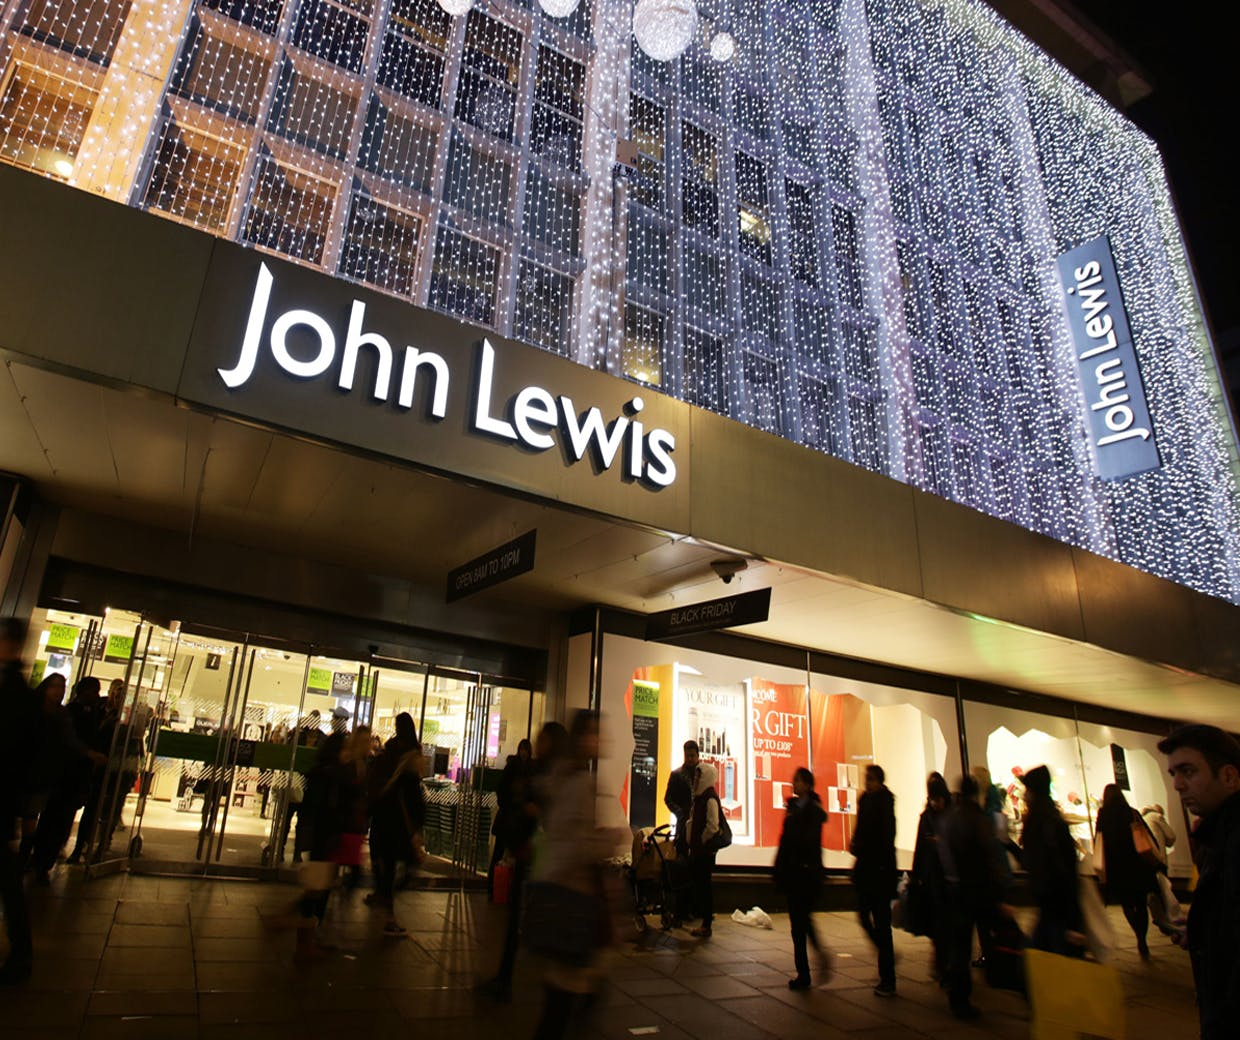 Black Friday Week John Lewis Says It Won't Be Drawn Into A Price War This